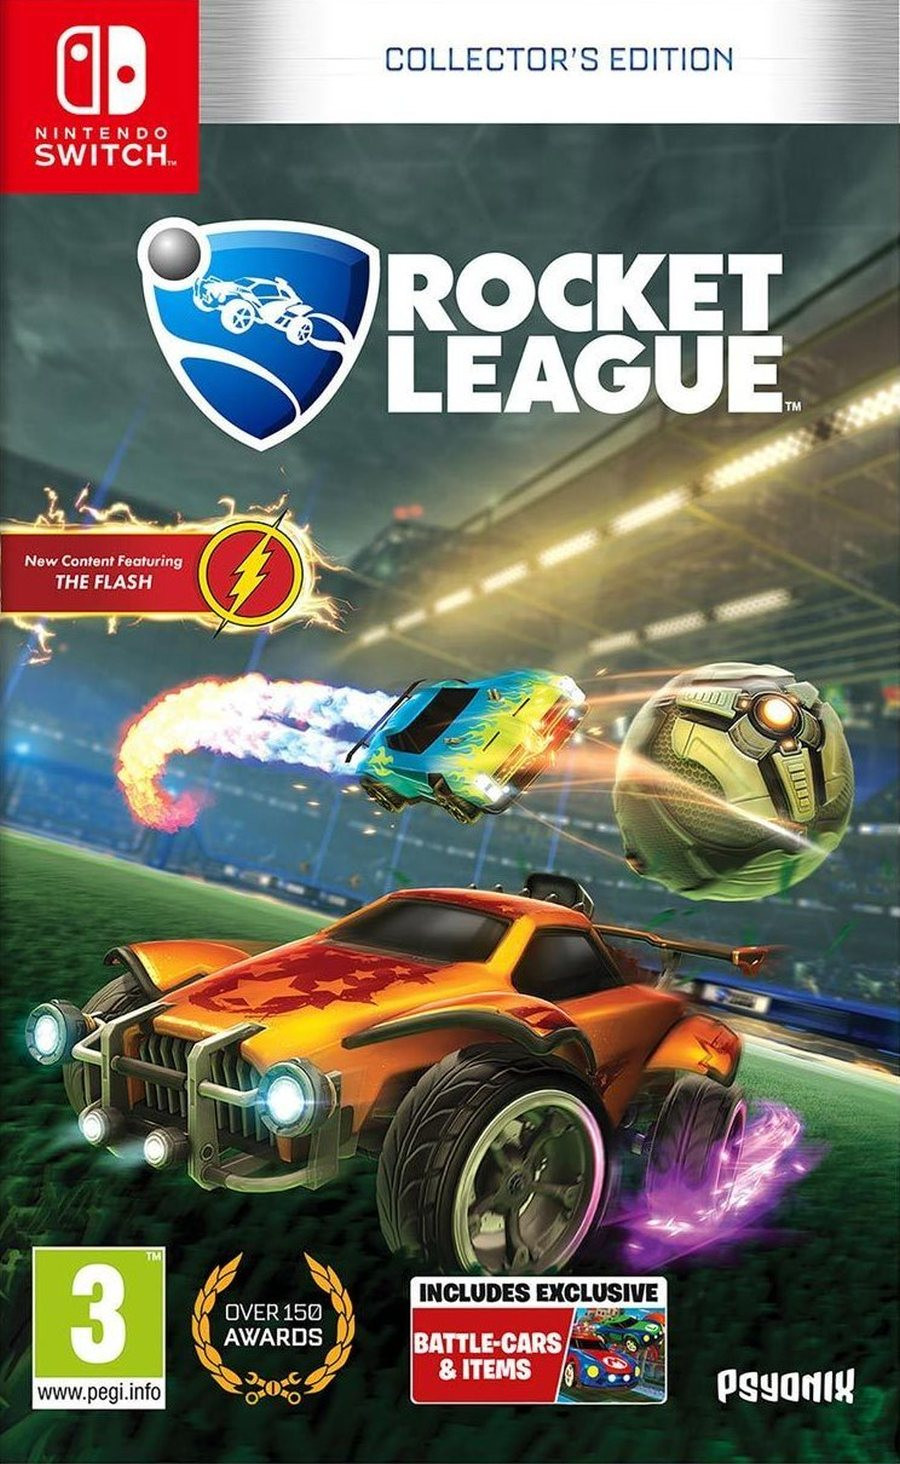 SWITCH Rocket League Collectors Edition